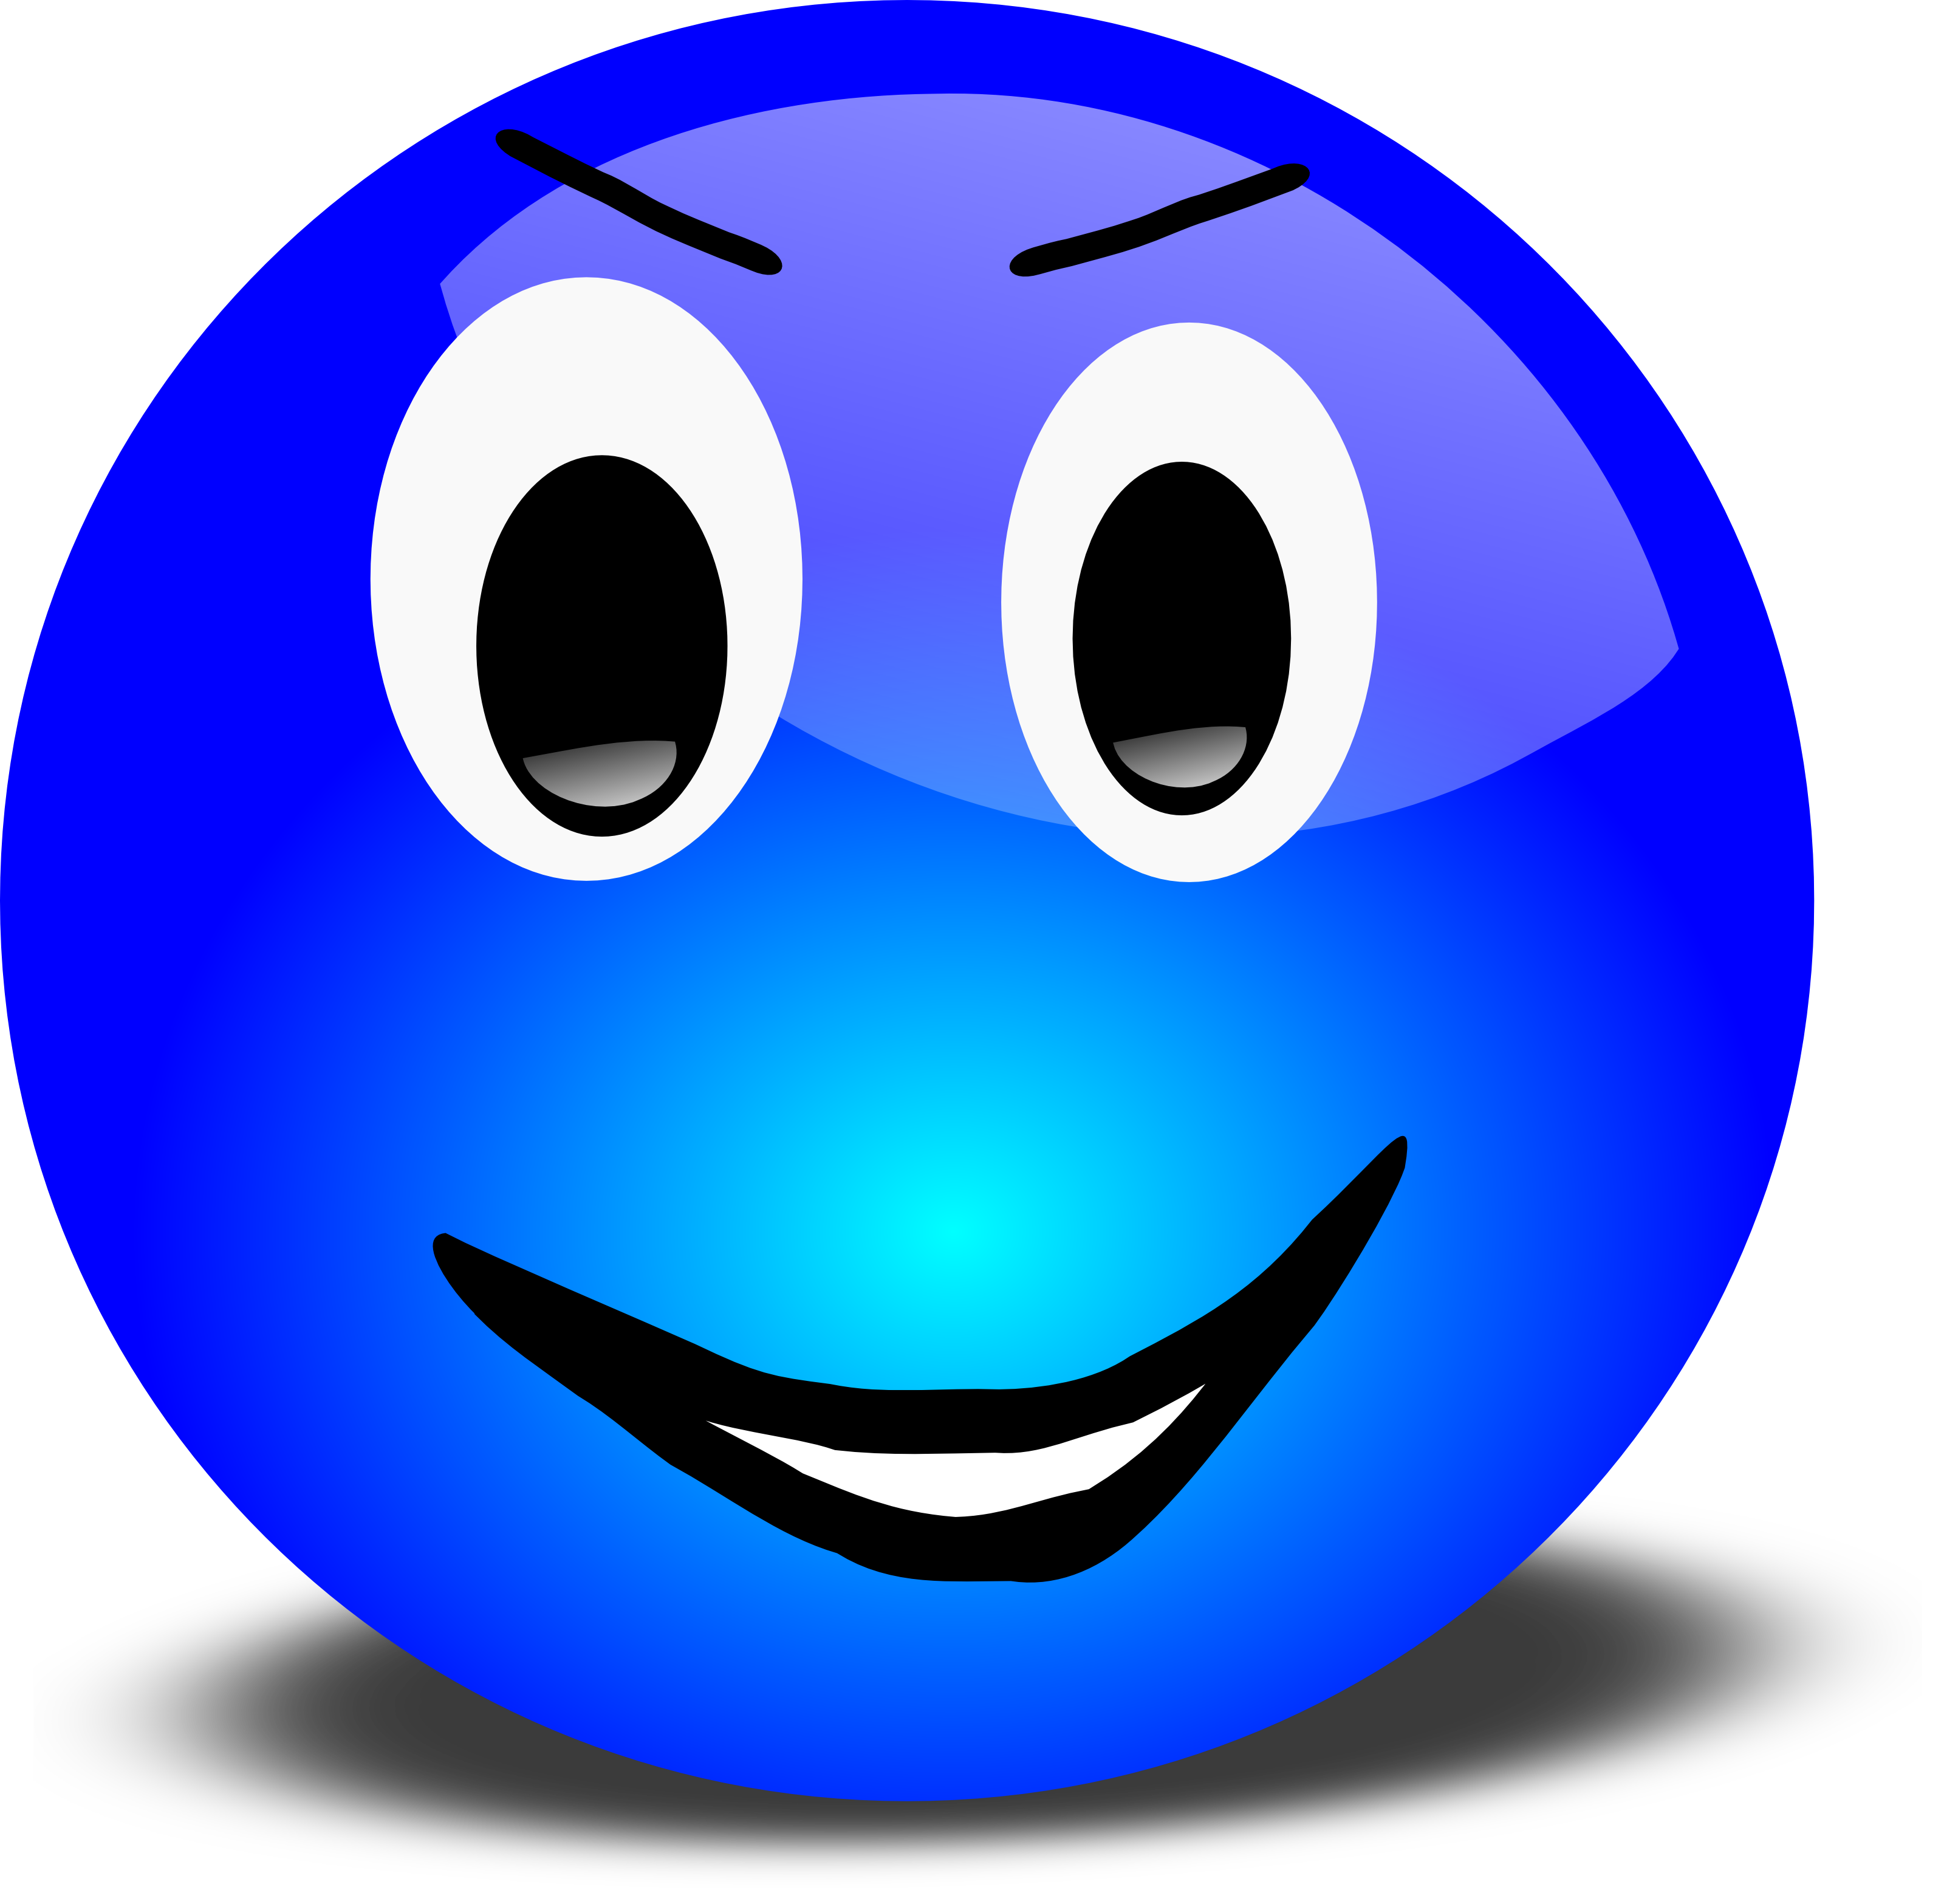 Free 3d Grinning Blue Smiley Face Clipart Illustration - Cool Smiley Face Clip Art